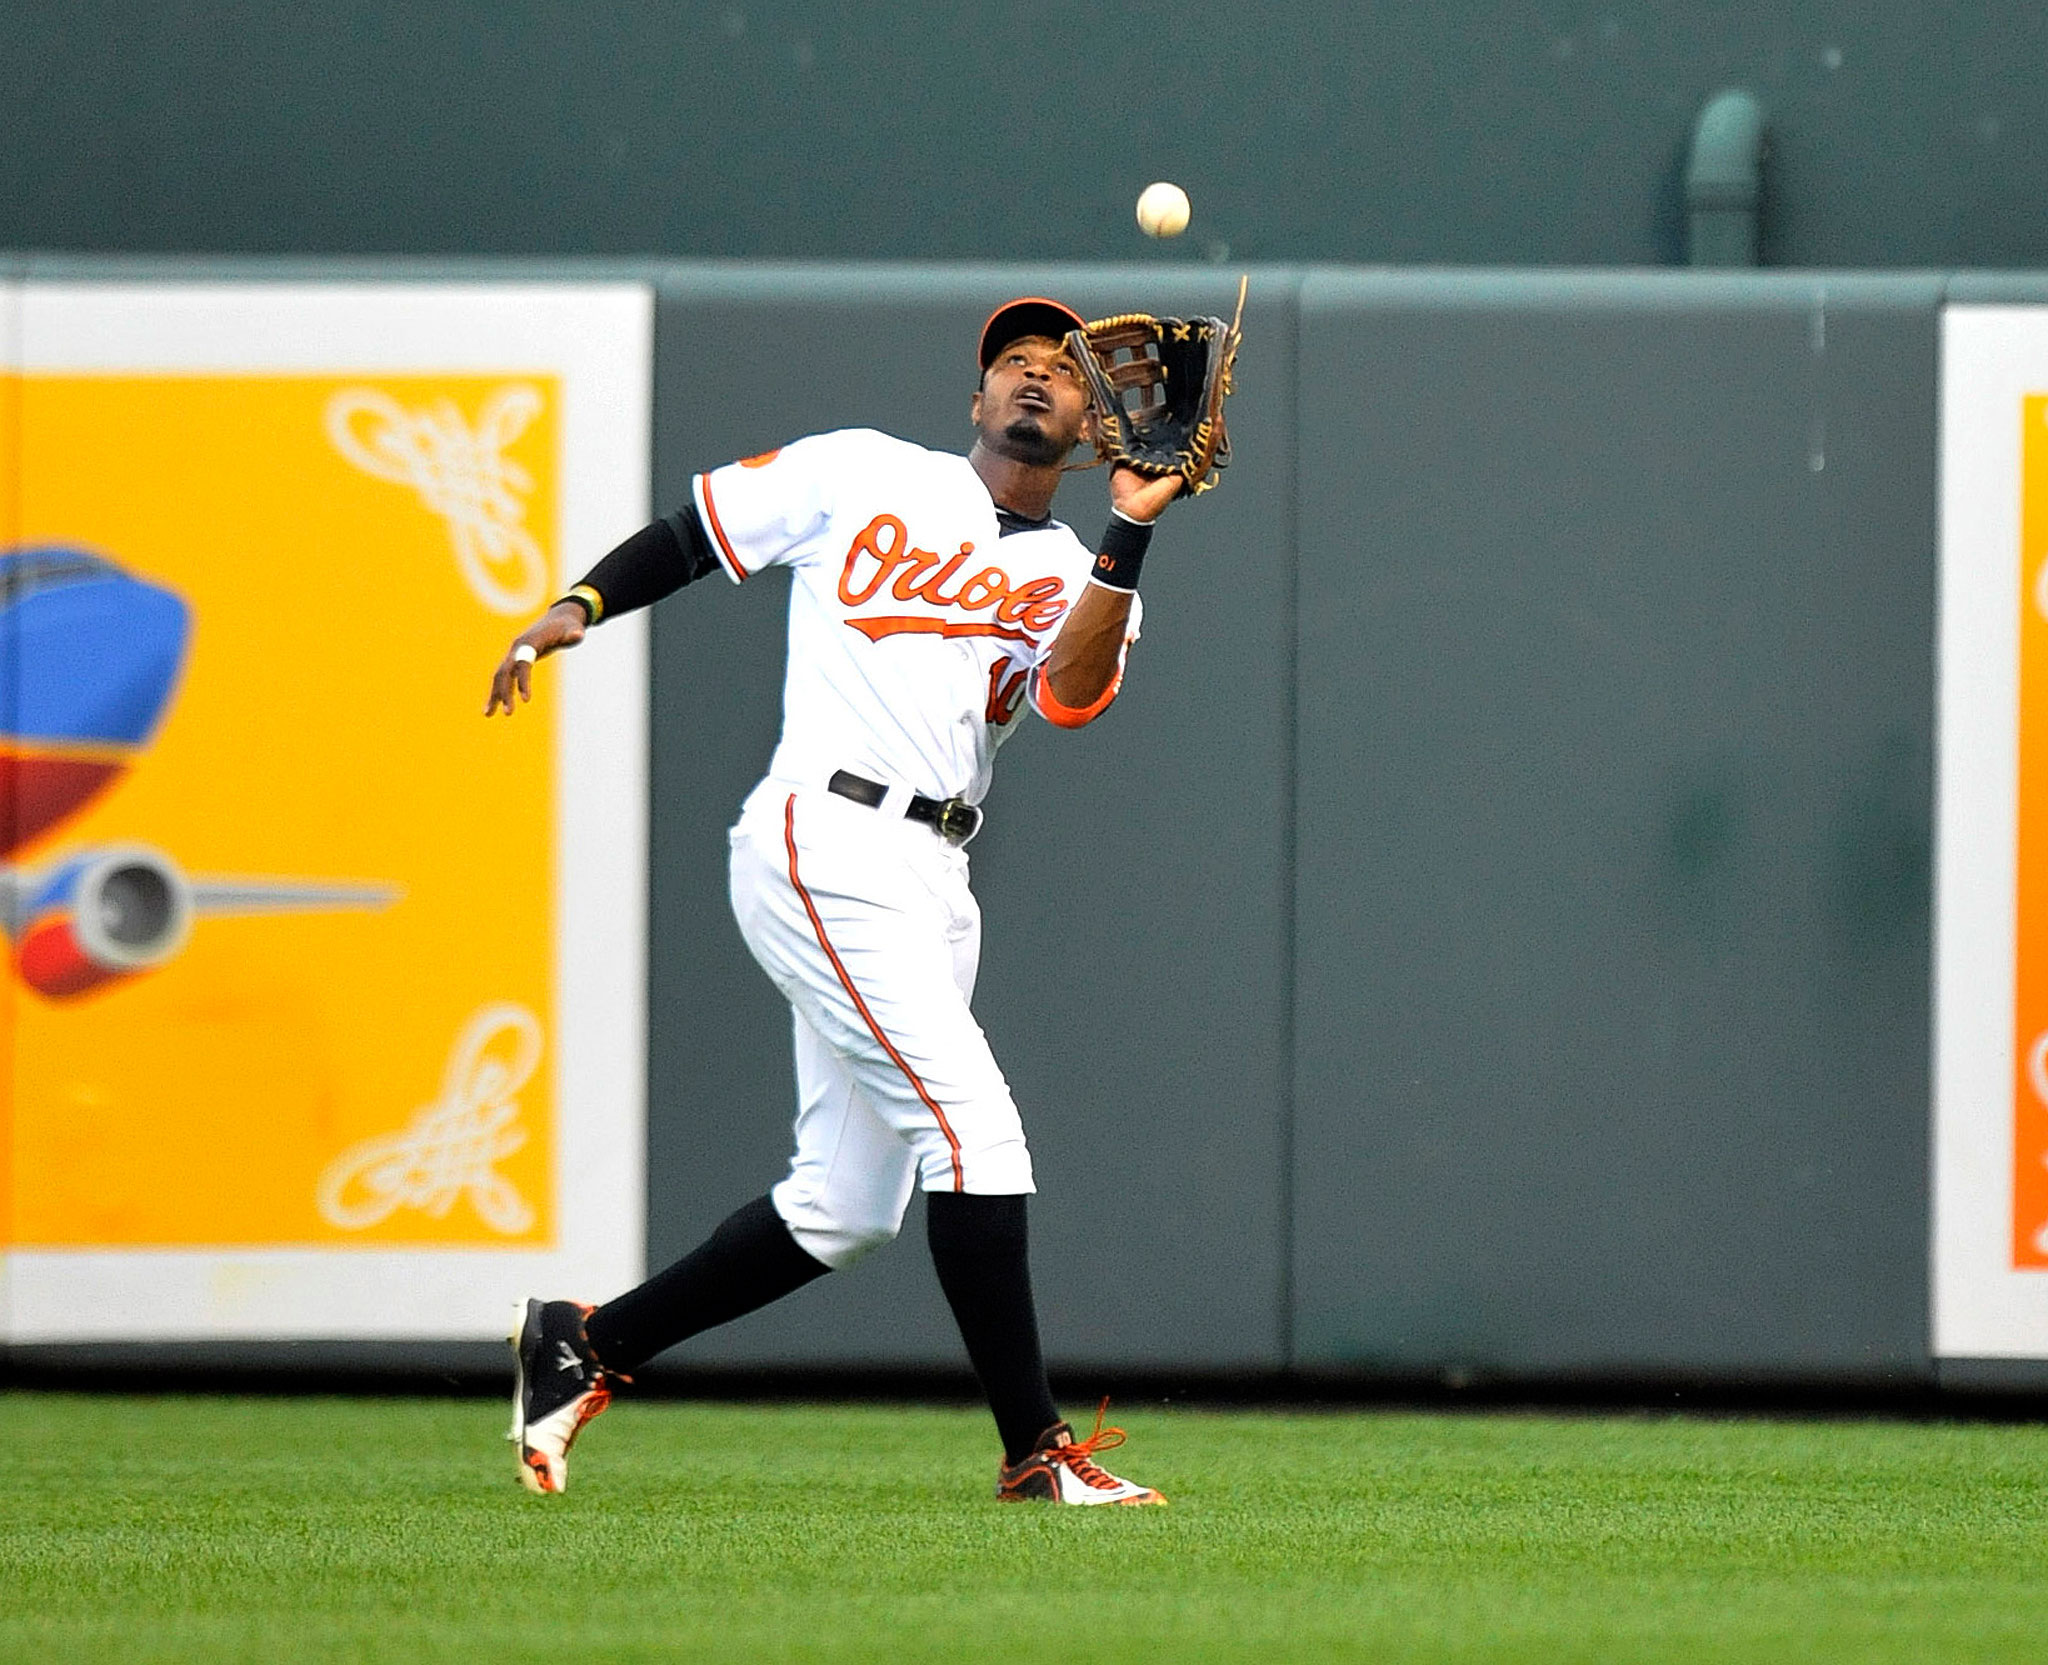 Center Field: Adam Jones